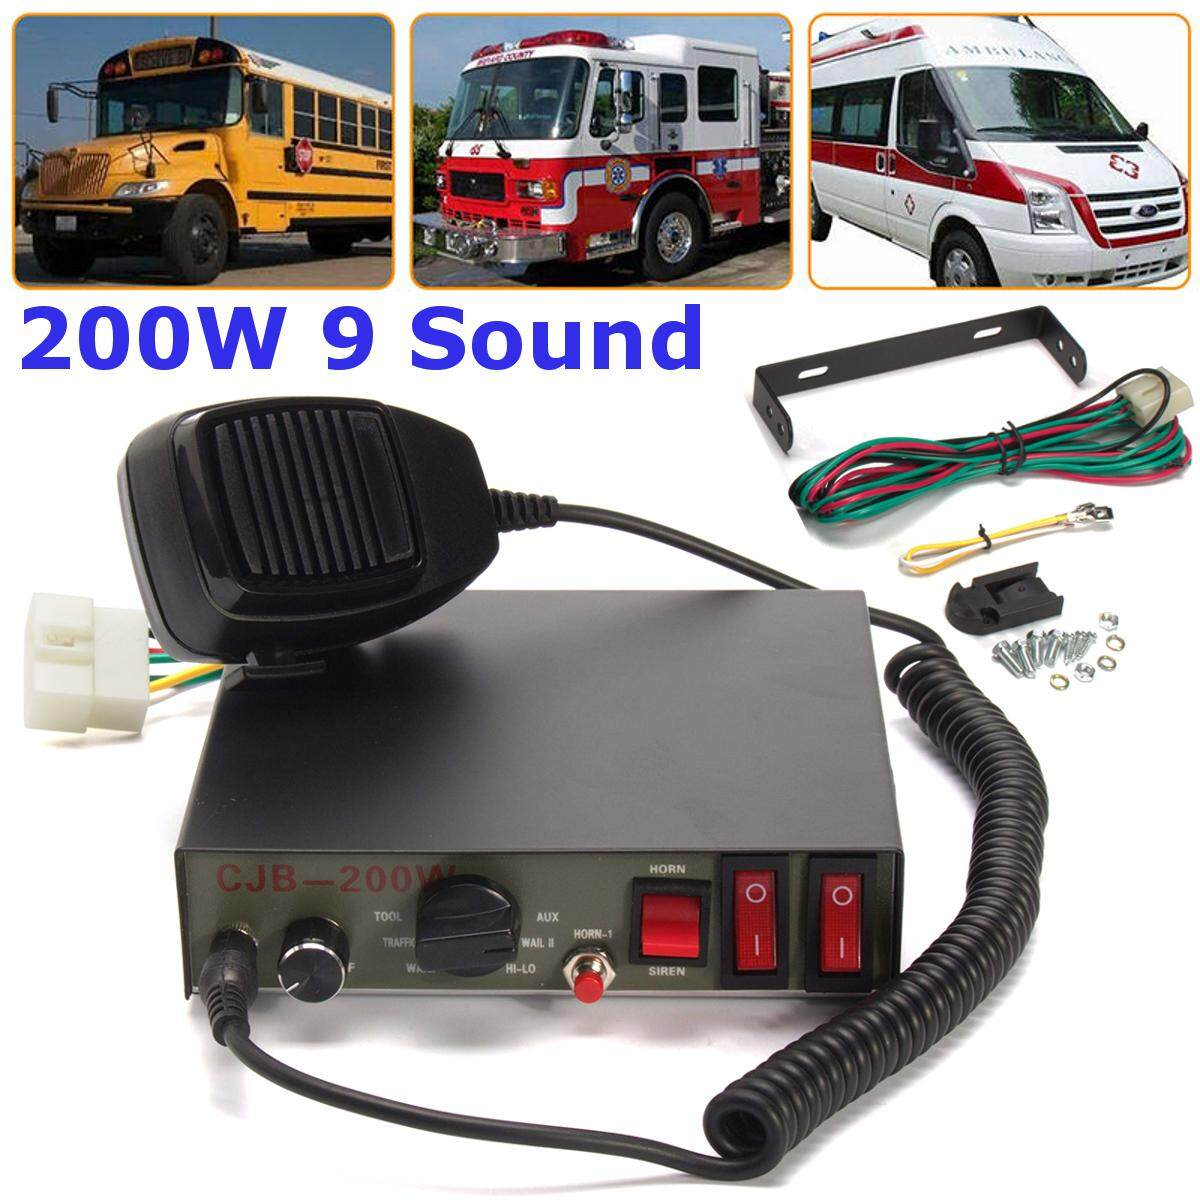 Set 200W 8 Tones Loud Car Warning Alarm Police Fire Siren Horn PA Speaker 12V With Wireless Remote Control